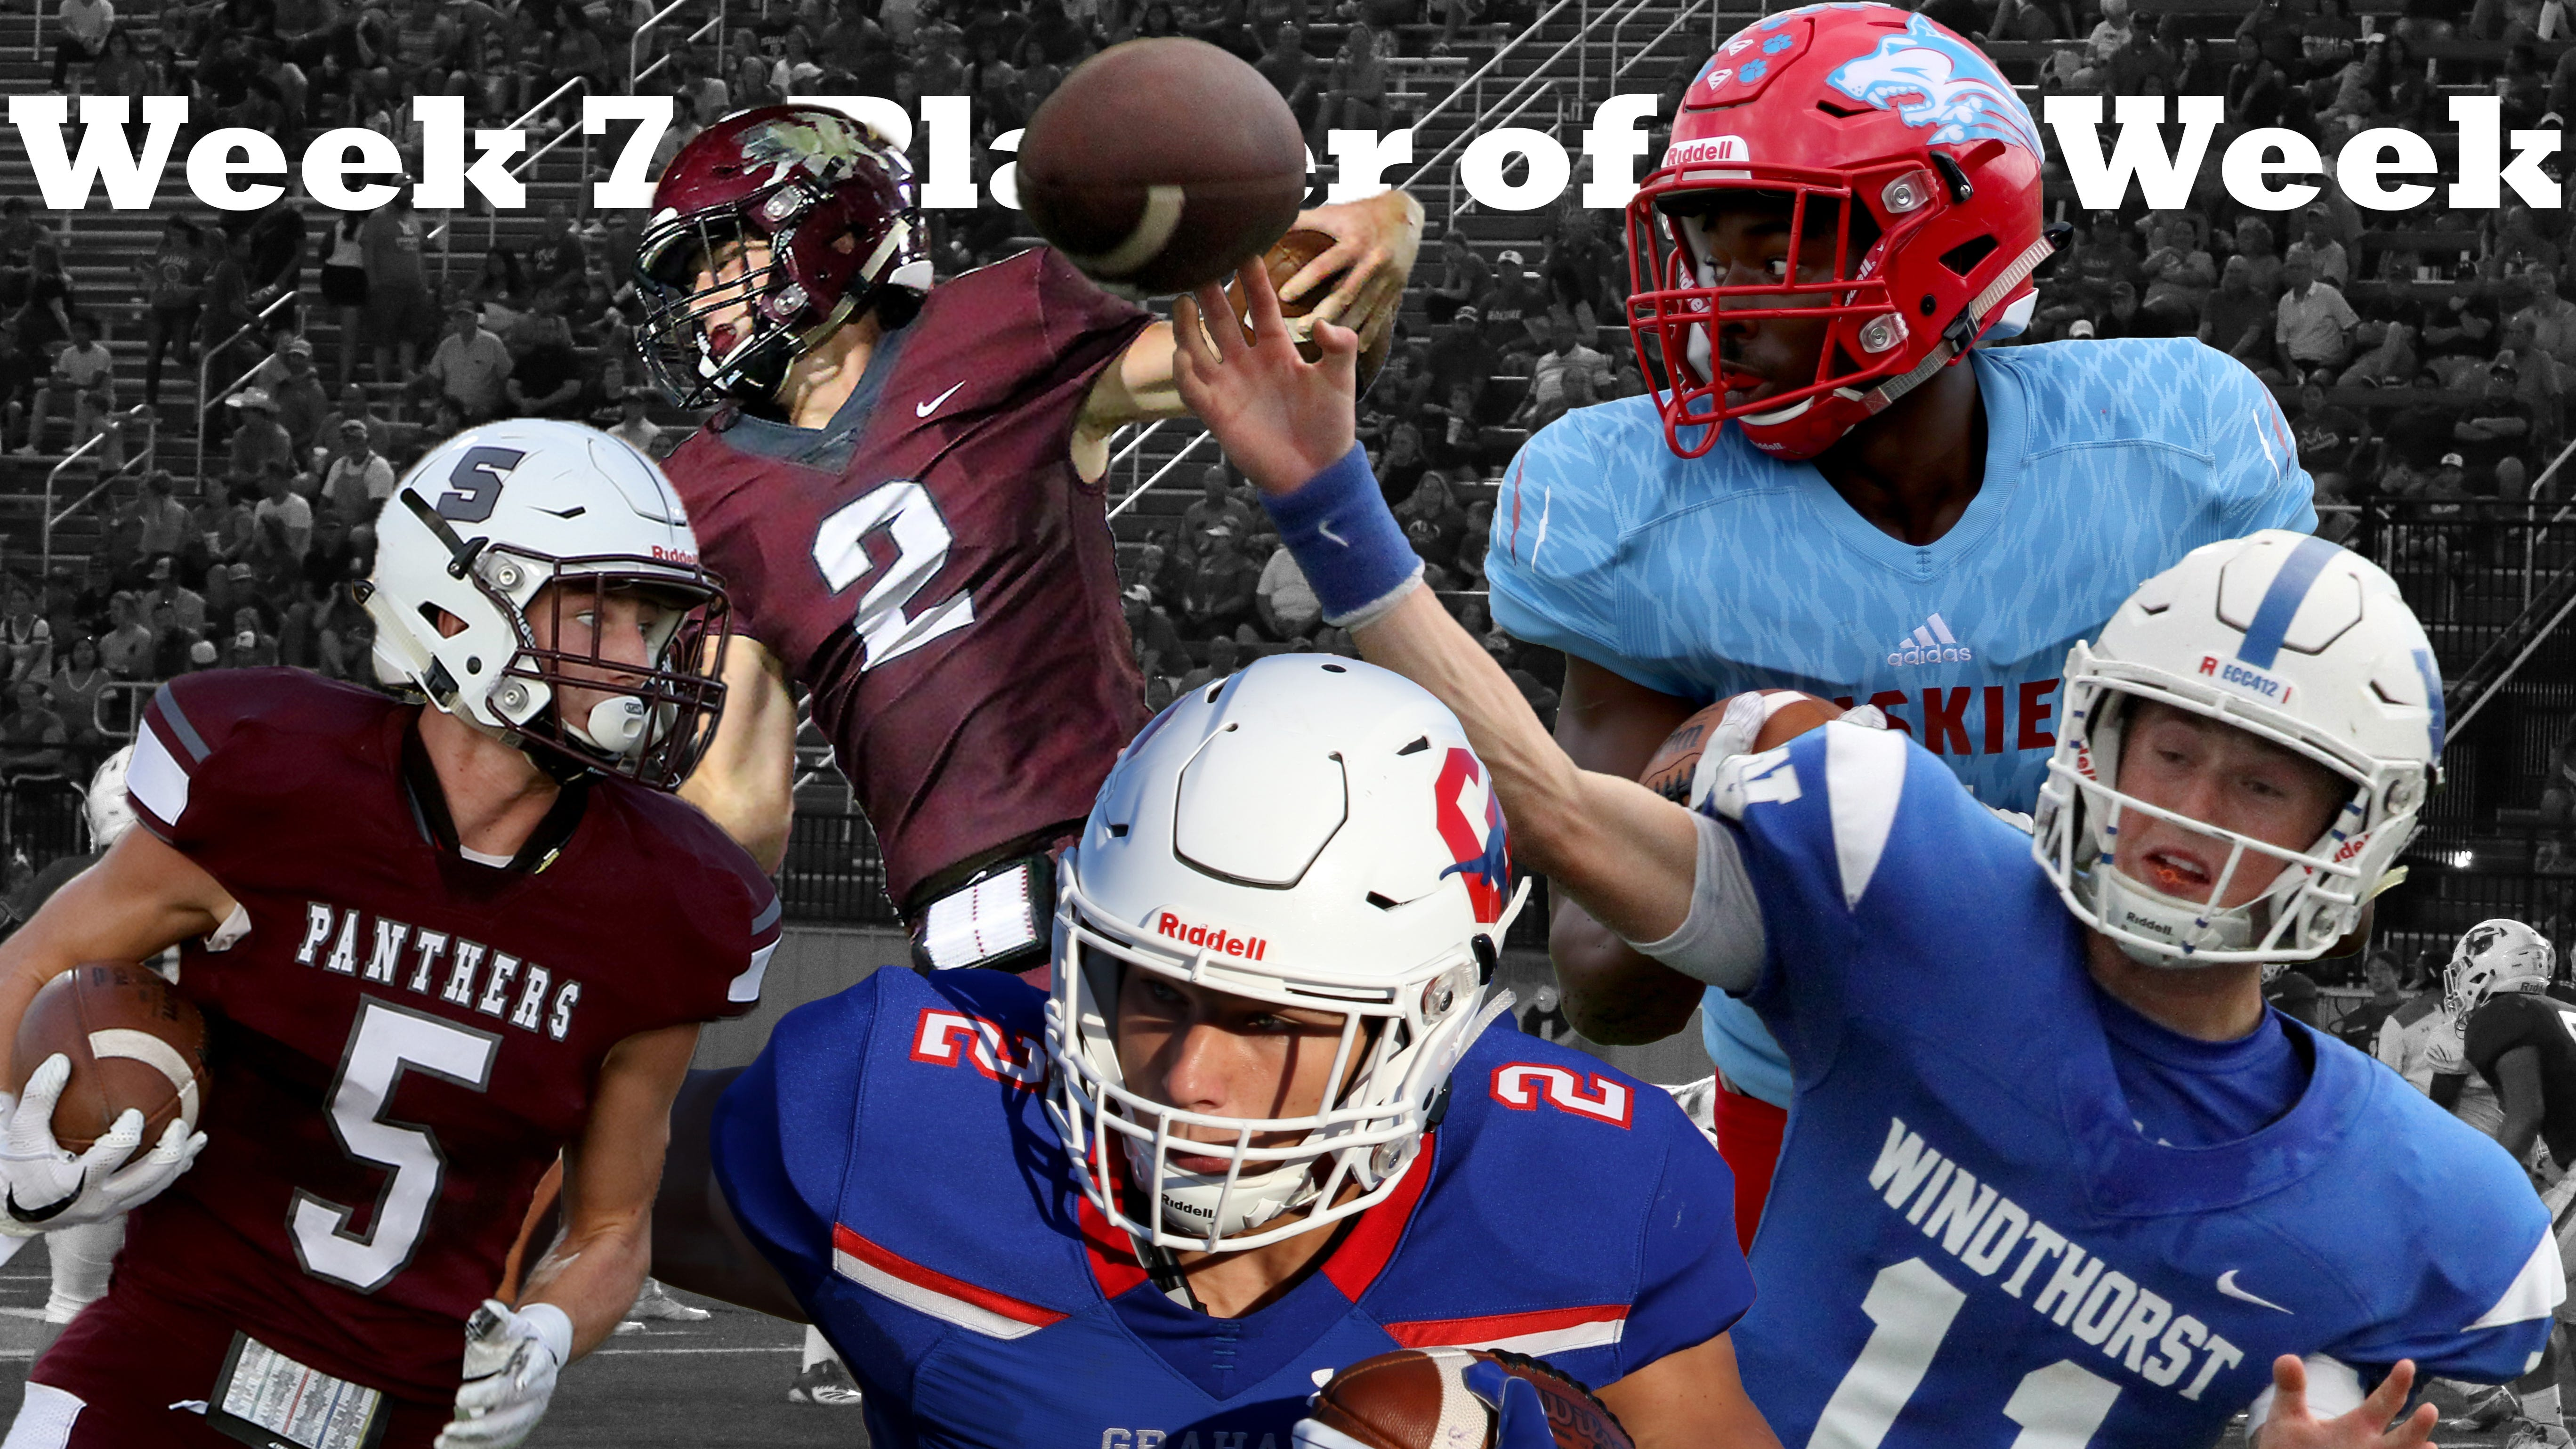 Week 7 nominees for Player of the Week are Seymour Garrett Siegert, Vernon's B.T. White, Graham's Chase Gilmore, Hirschi's Daimarqua Foster and Windthorst's Hunter Wolf.